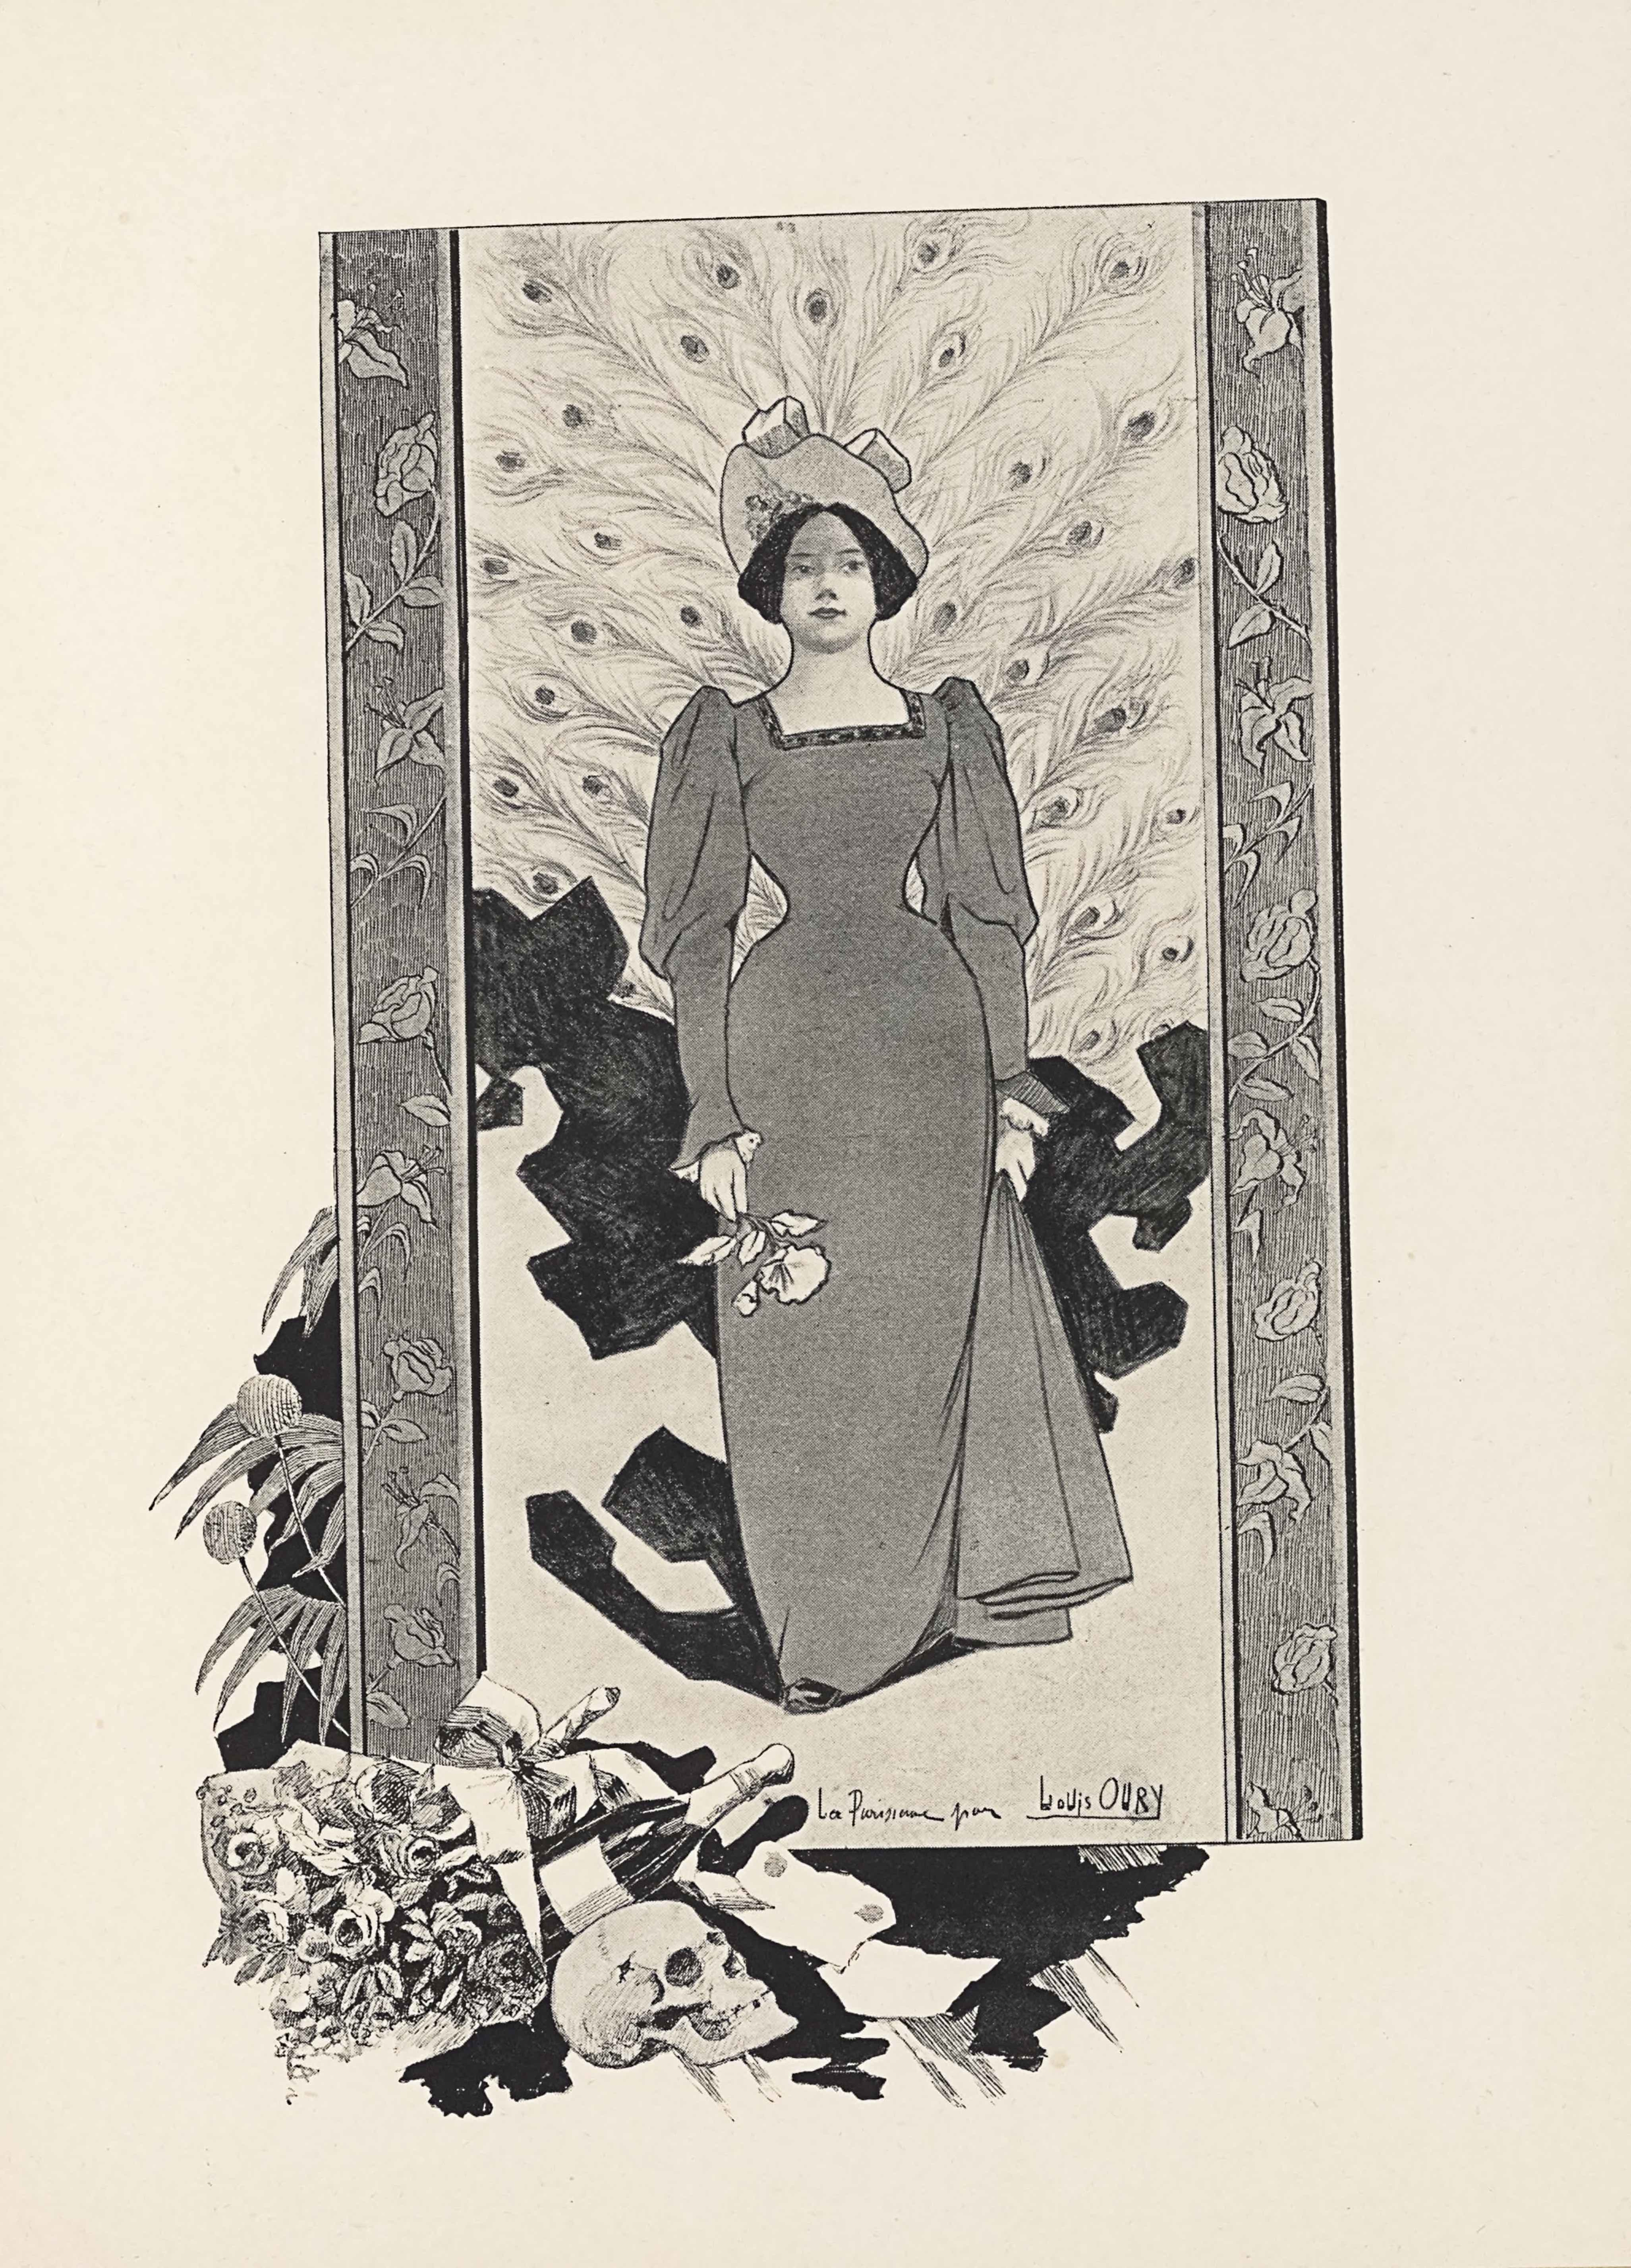 "The halftone image reproduces a poster in portrait orientation. The image is of a full-length figure of a woman, facing frontally. Out of the frame around her spill flowers, champagne, and a skull. The woman takes up almost the whole page, in a big rectangular portrait frame. The frame has a thick border on the left and right side only, with engraved roses. The woman is foregrounded, centered, and takes up three-quarters of the height and half the width of the space. She is wearing a darker gown with a square neckline that has a slight geometric pattern of squares or triangles in a thin line around the neck. The dress pinches in at the waist, with puffy shoulders and then sleeves that tighten at the forearm. In her right hand is a single flower, which she holds upside down, with the petals facing the ground. Her left hand is holding a swath of her dress and lifting the side slightly. Her hair is tied back, and she wears a large hat, tilted up away from her face with a slight floral detail on the underside of its brim and bow loops falling forwards over the edge. In the background on the bottom half of the picture is a patternless, dark geometric shape. It juts out around her skirt in blocky, irregular extensions. The top half of the picture has a background of peacock feathers that emerge out from directly behind the woman's back. They reach out all the way to the border of the picture. In the bottom right, the picture has the text ""La Parisienne May Louis OURY"" in a single line, and with the artist's name ""Louis OURY"" underlined. Seeping out from behind the bottom of the picture frame is a black liquid. On top of the liquid and just in front of the picture is a scroll laid out with no writing on it. To the left of that is a skull in portrait, facing to the right. Behind the skull and just before the picture is an unopened bottle of champagne lying sideways to the right and a bouquet of flowers rests on top of the bottle with the stems fallen slightly to its left. Emerging from behind the low left side of the picture are two dandelion flowers growing upwards and three arms of leaves, highlighted with a ragged black shaded background."